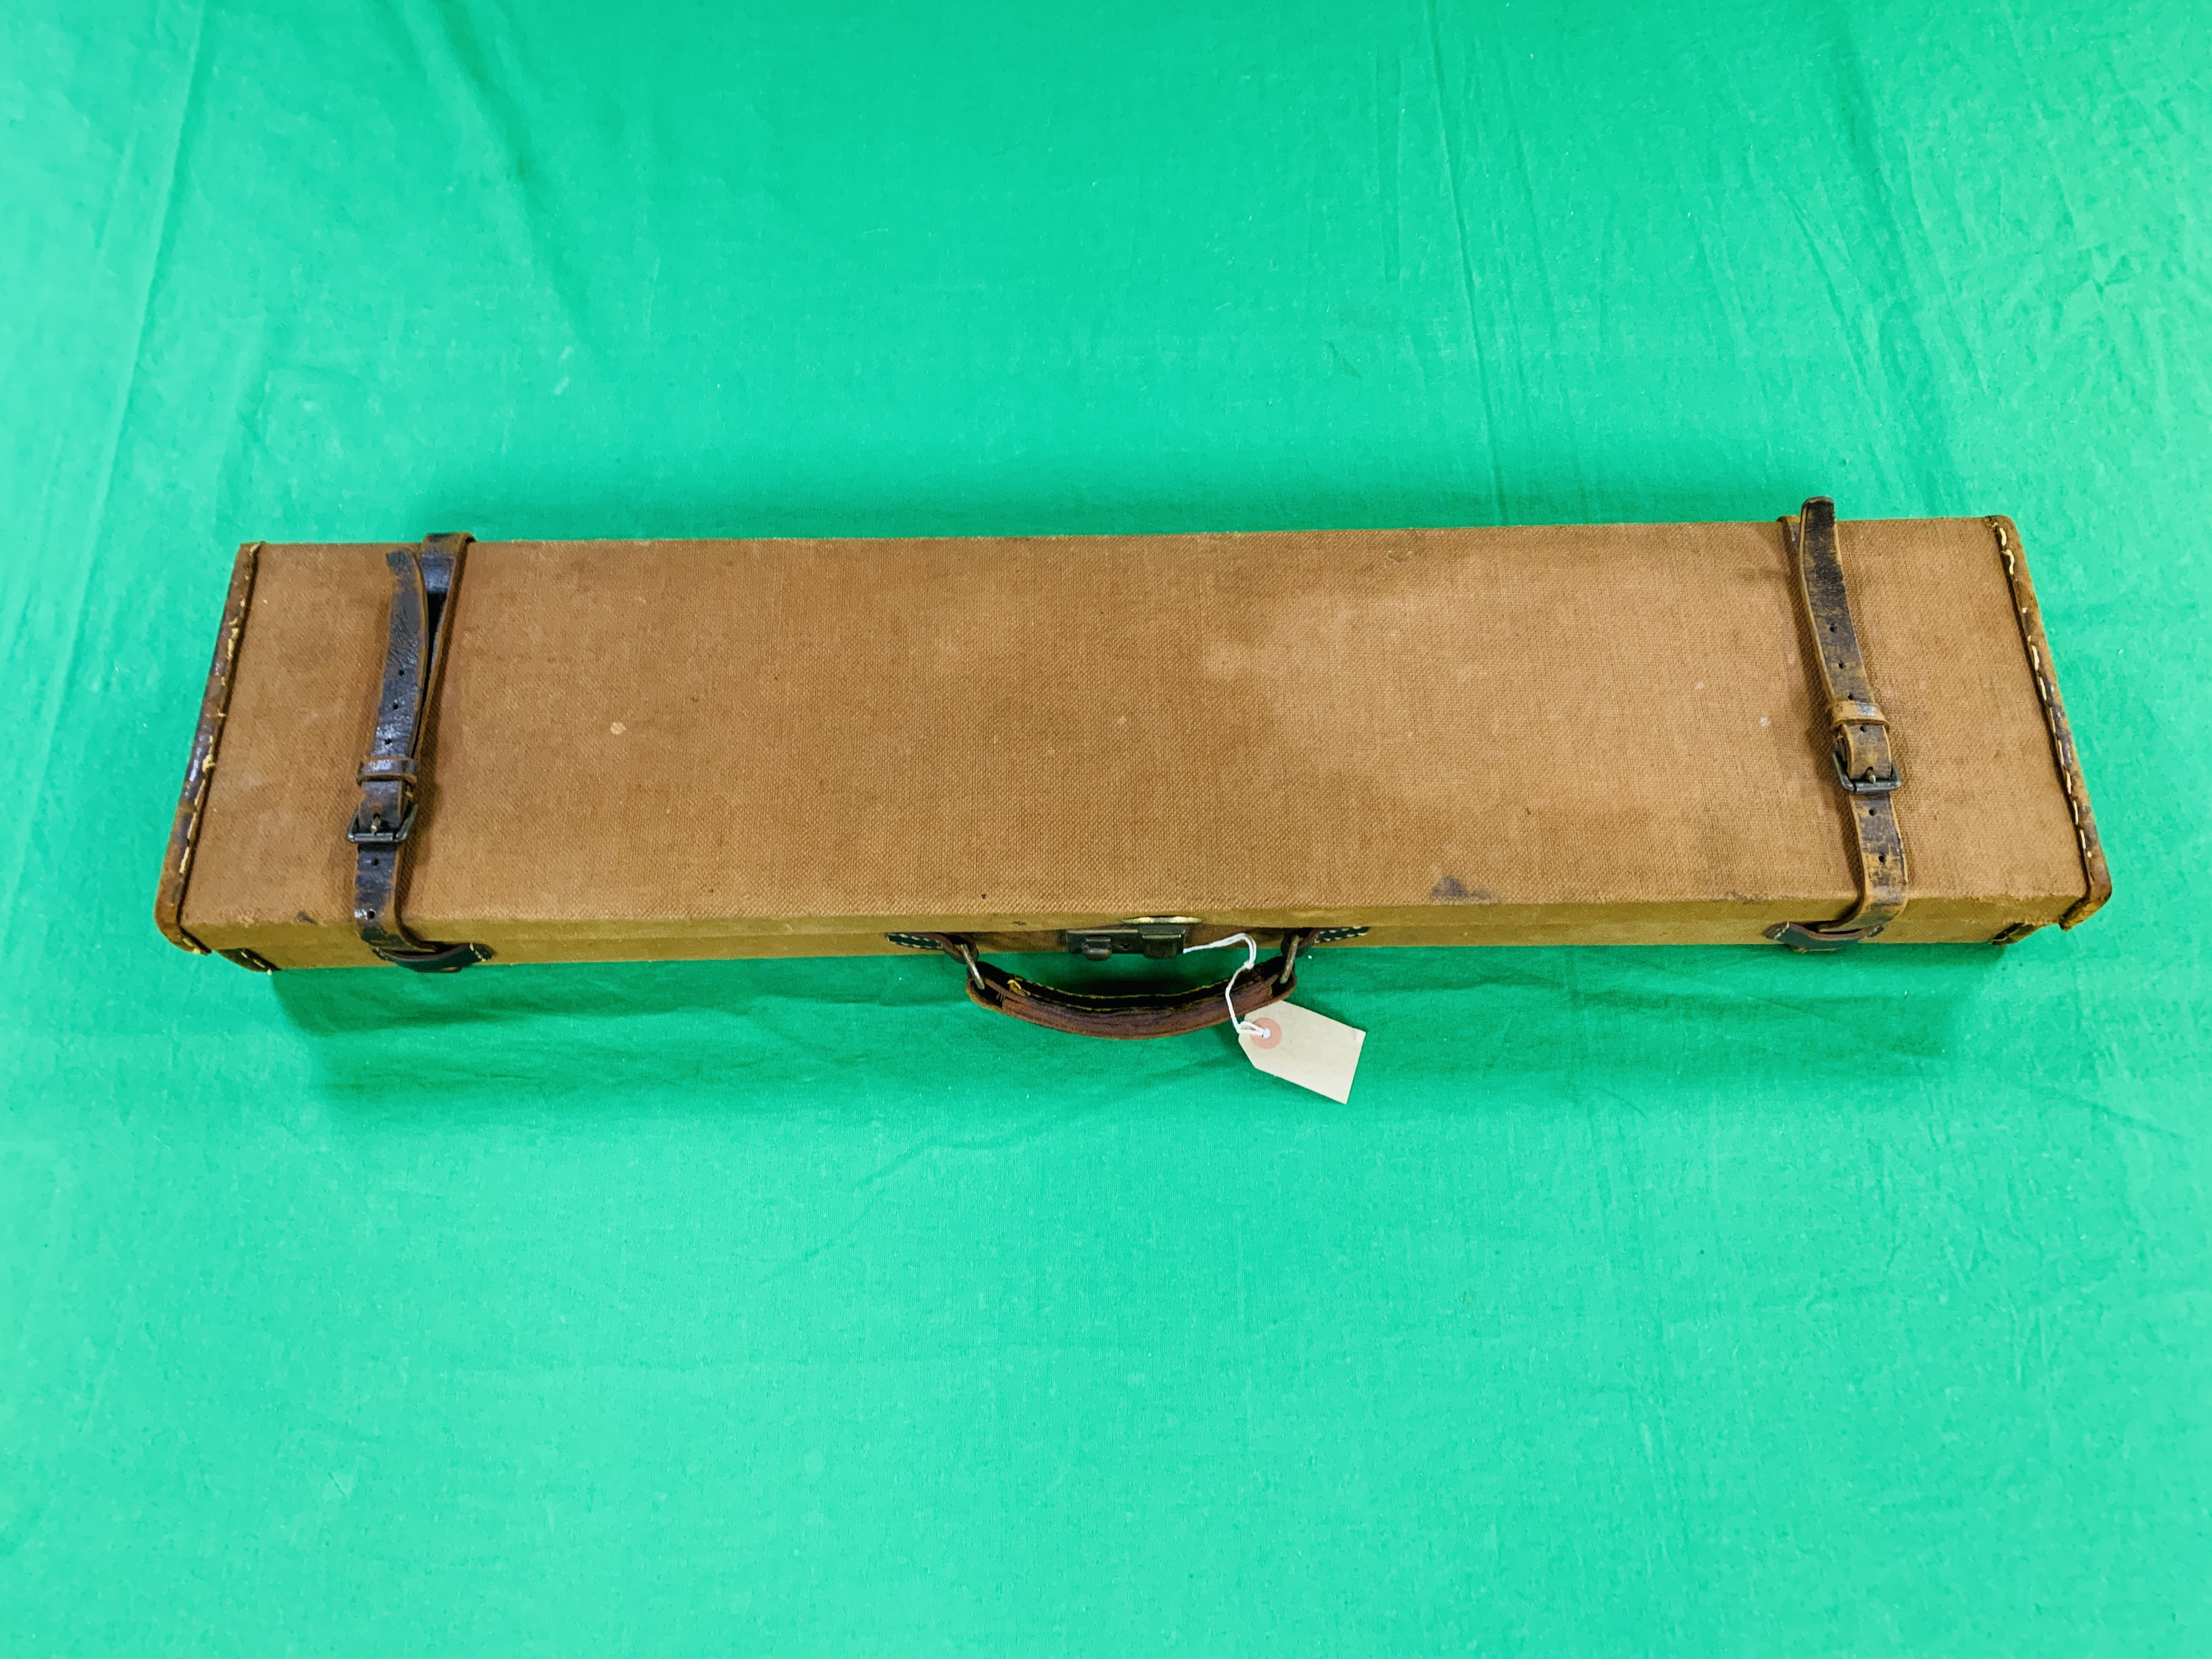 """BROWN CANVAS AND LEATHER 28 / 30"""" SIDE BY SIDE GUN CASE WITH GALLYON AND SONS LTD CASE LABEL - Image 10 of 10"""